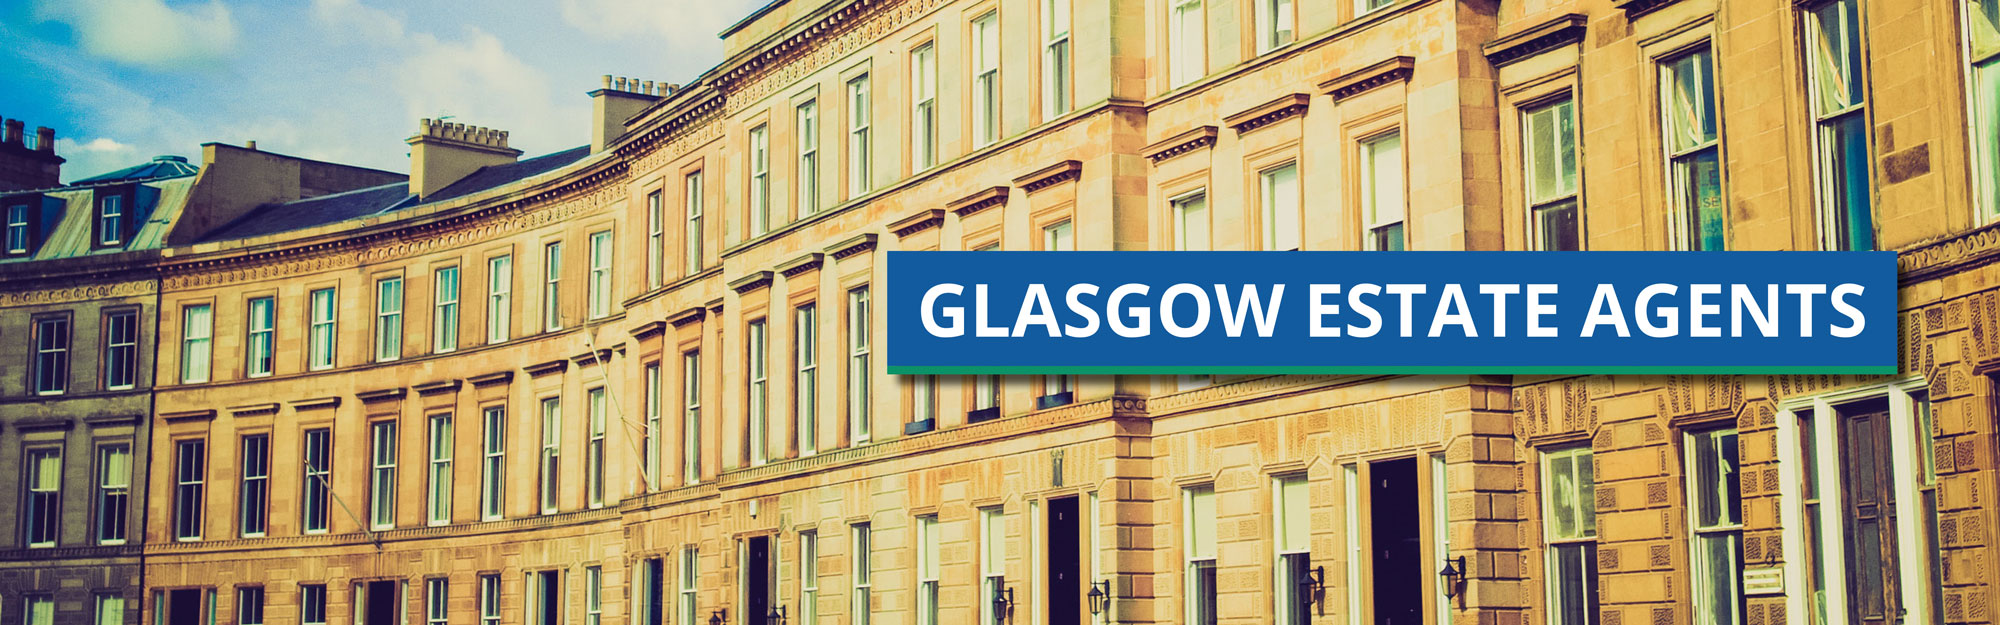 Estate Agency Services Glasgow - Ramsay & Co Solicitors